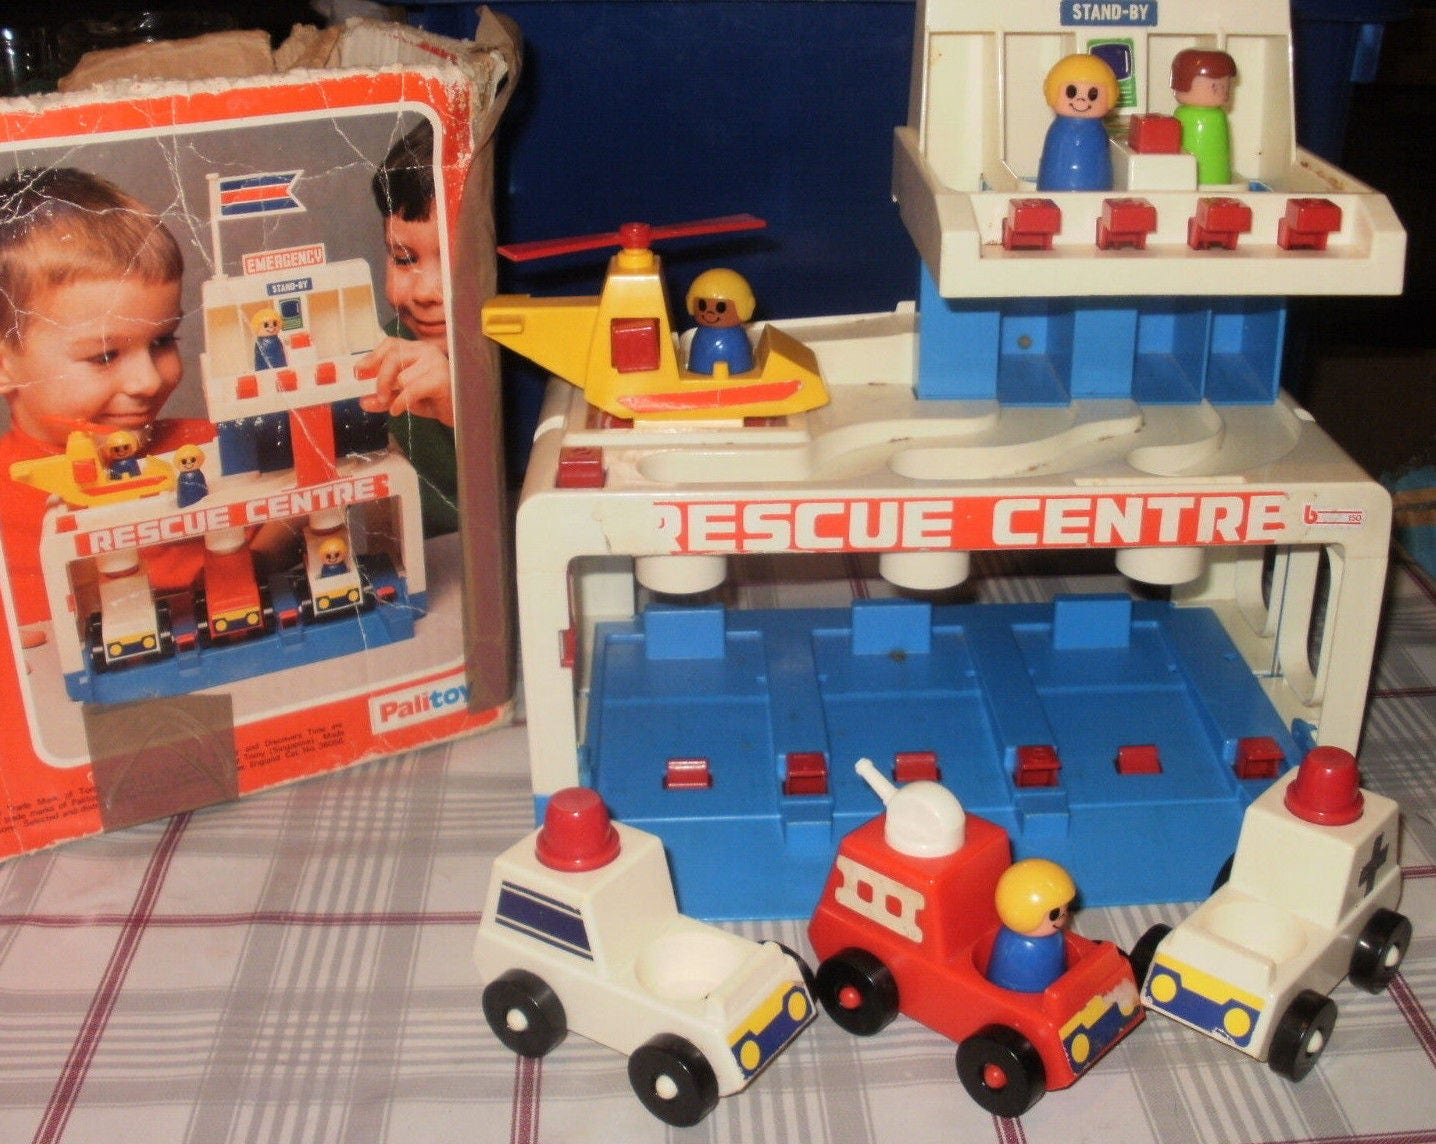 Vintage 70s Tomy Toy Rescue Centre in Original Box People Helicopter Ambulance Fire Engine Ambulance Police Vehicles Cars Toys birthday gift